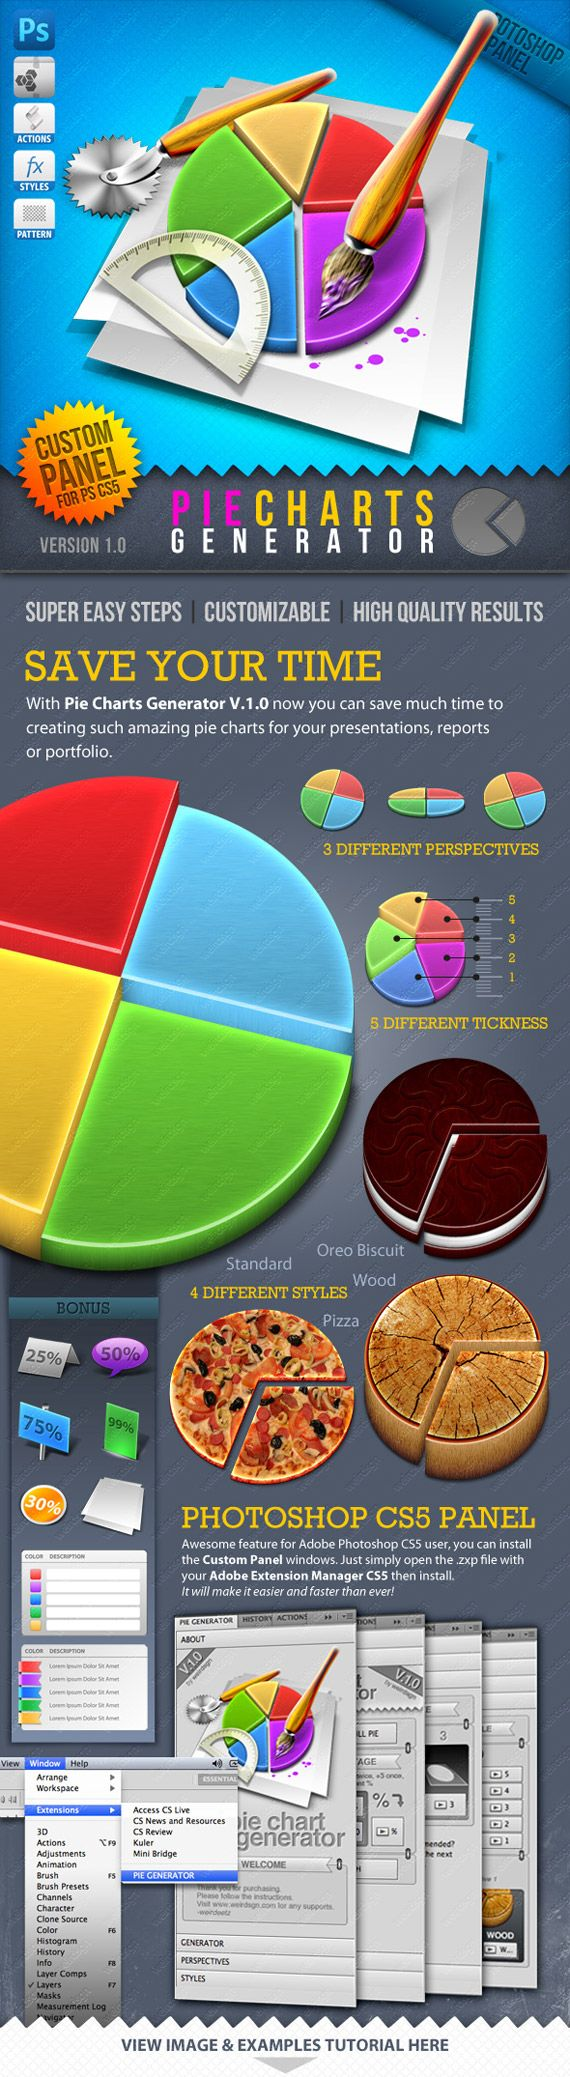 25 Best Images About Pie Charts On Pinterest Infographic